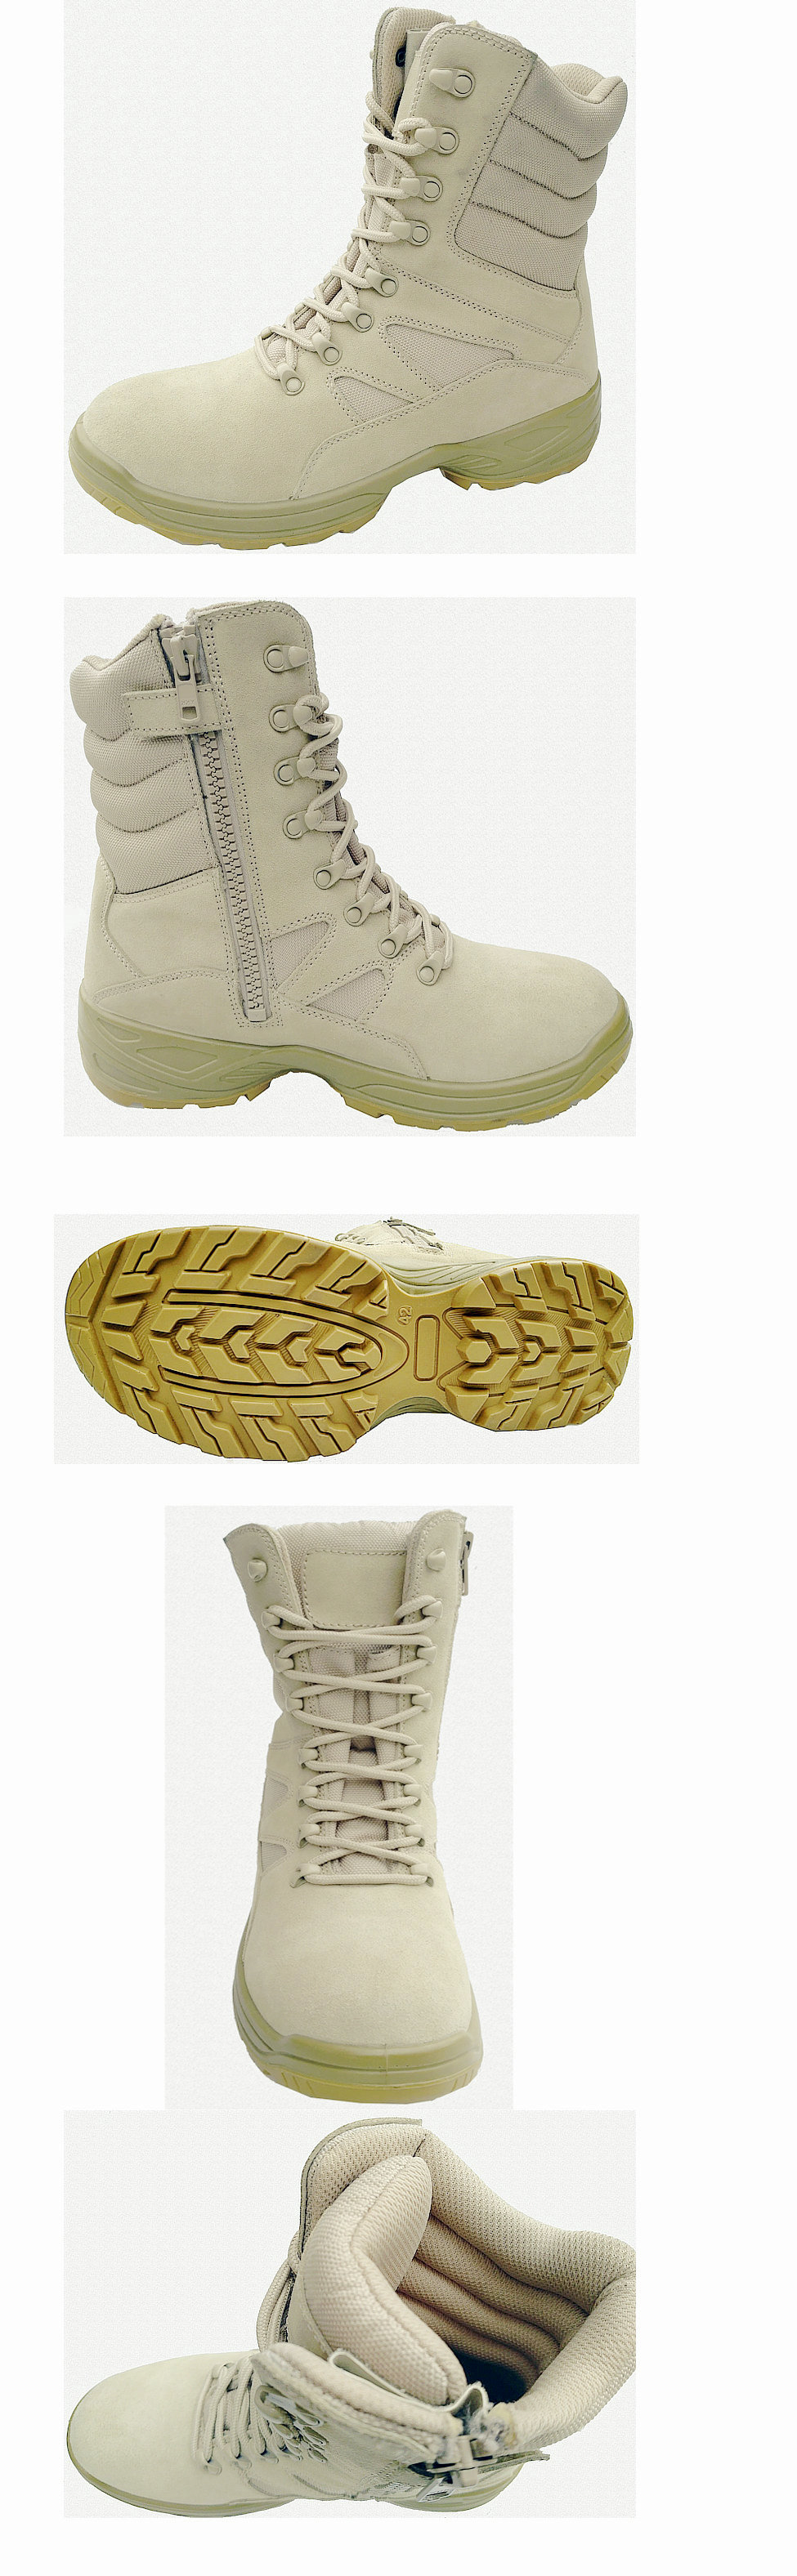 High Ankle Nubuck Safety Boots